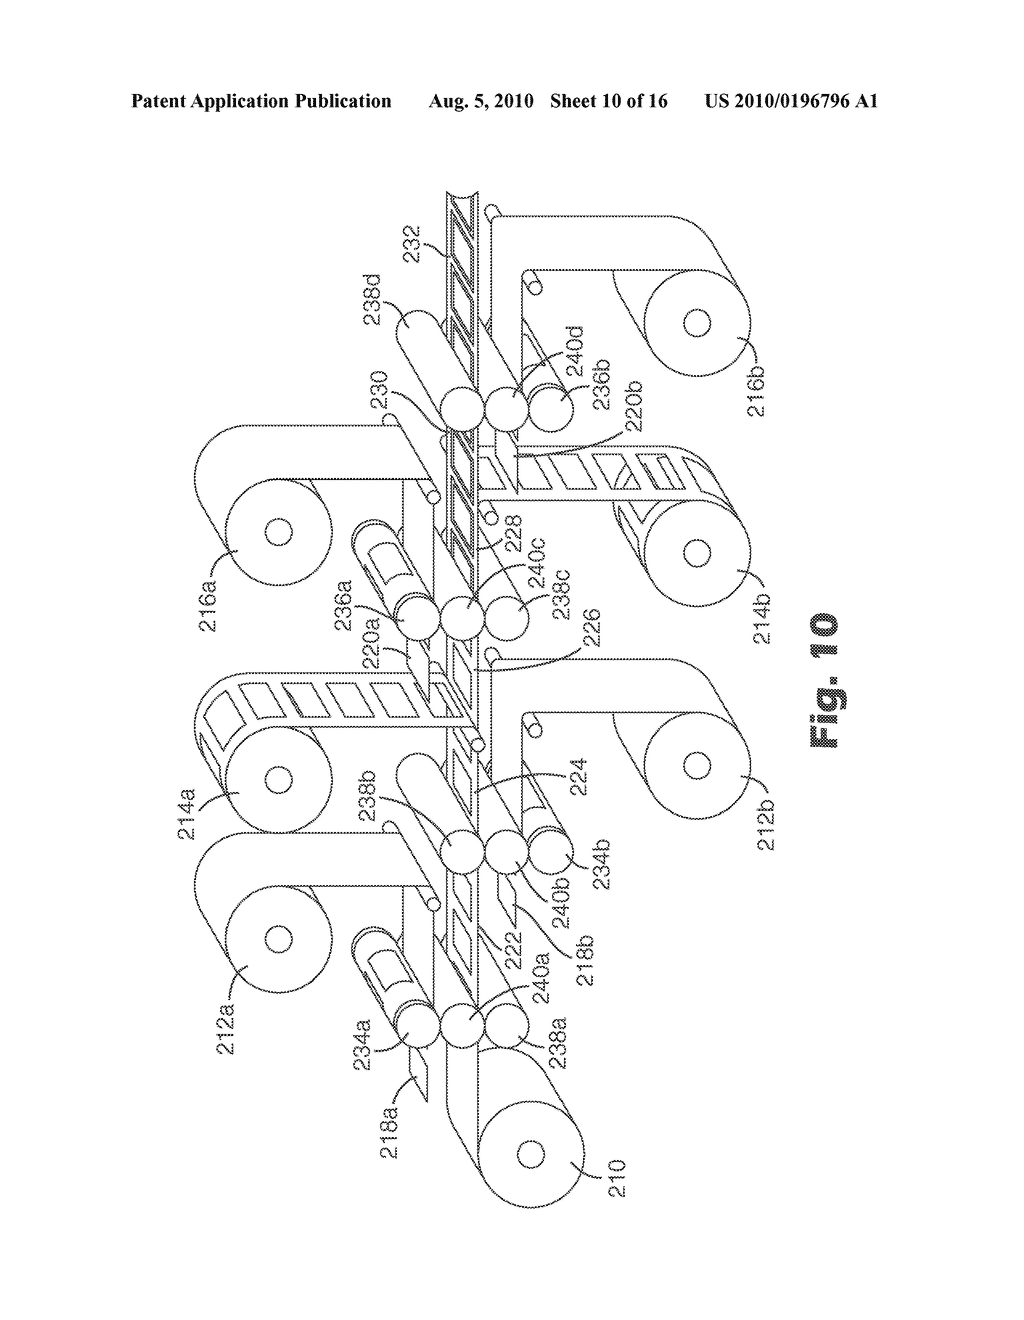 ROLL-GOOD FUEL CELL FABRICATION PROCESSES, EQUIPMENT, AND ARTICLES PRODUCED FROM SAME - diagram, schematic, and image 11